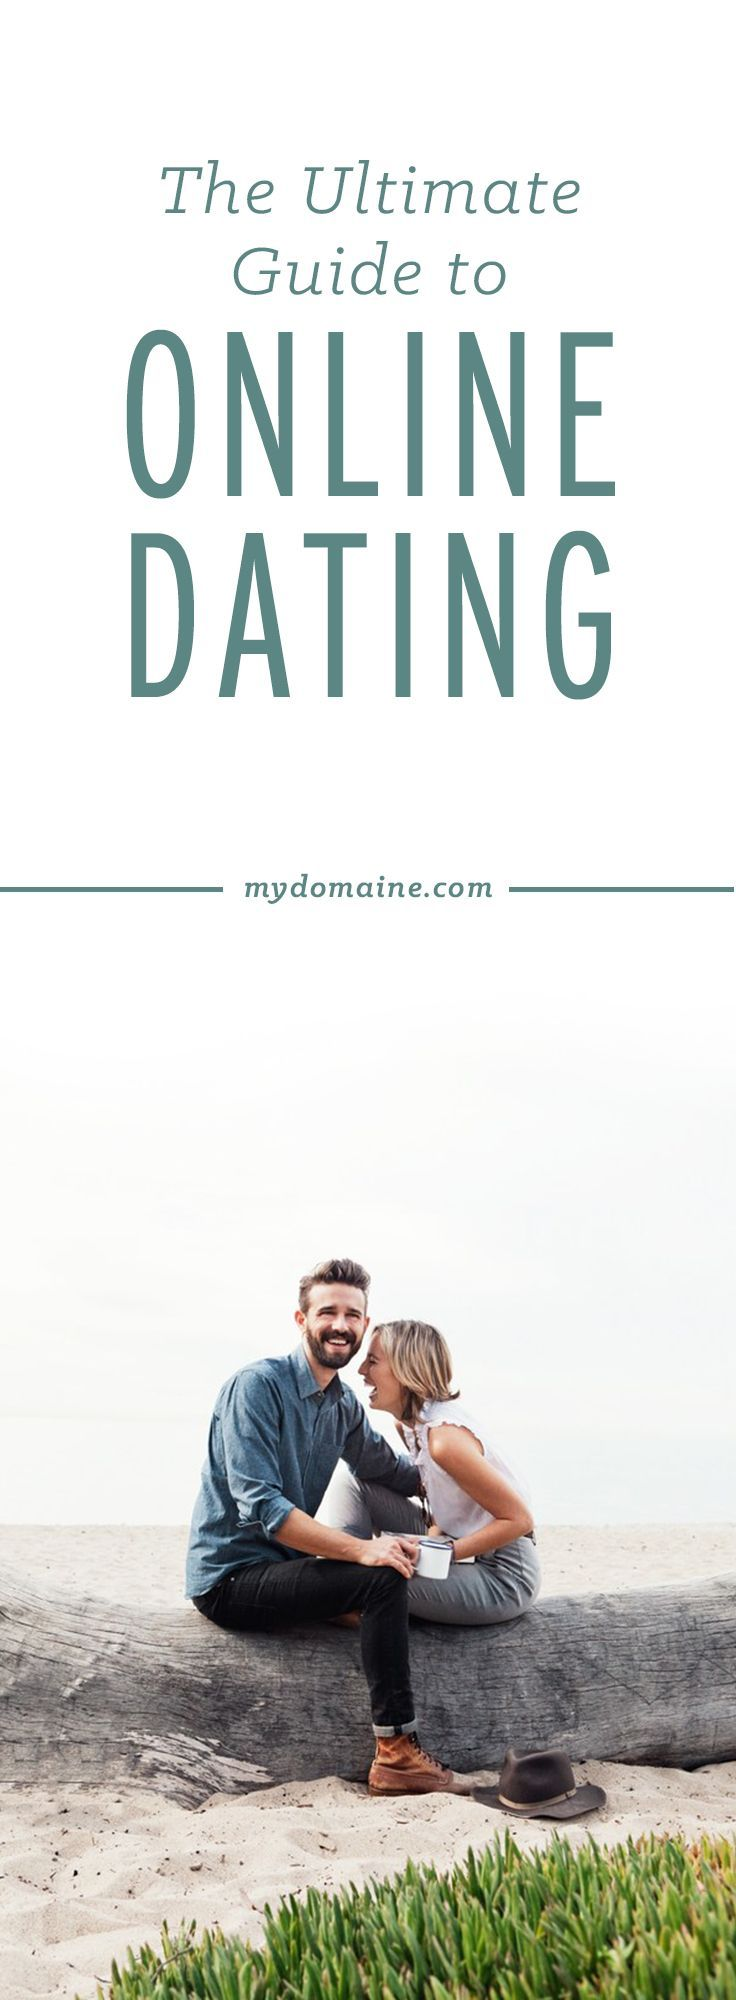 How does dating improve social skills